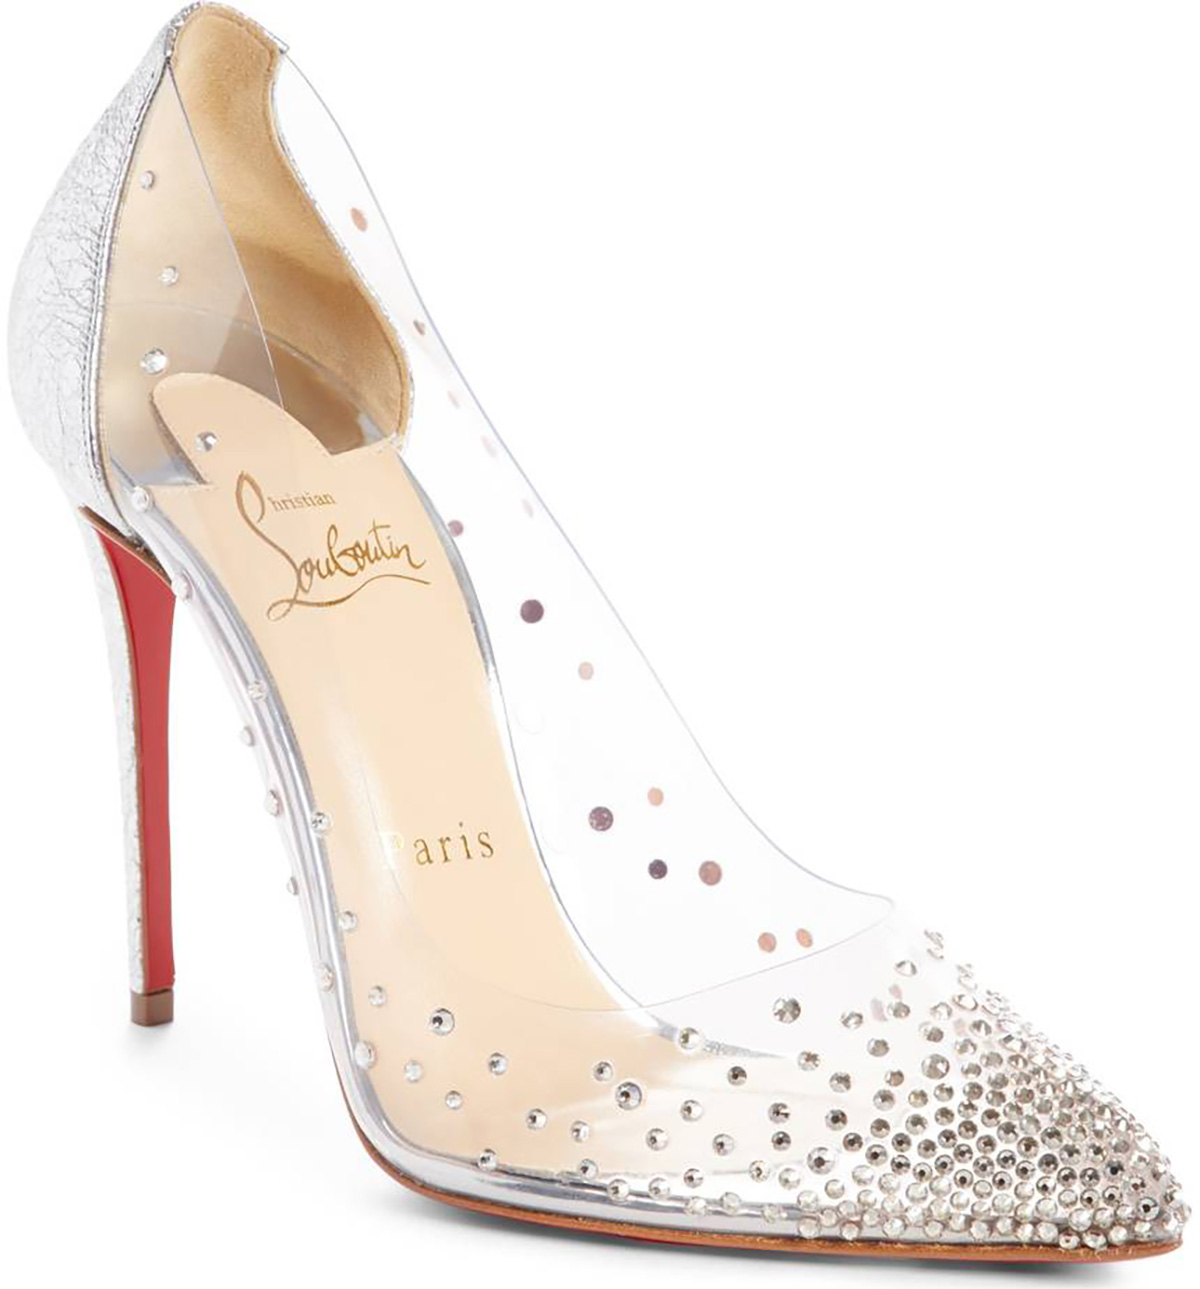 christina-louboutin-degastrass-clear-embellished-pumps. Los zapatitos de cristal